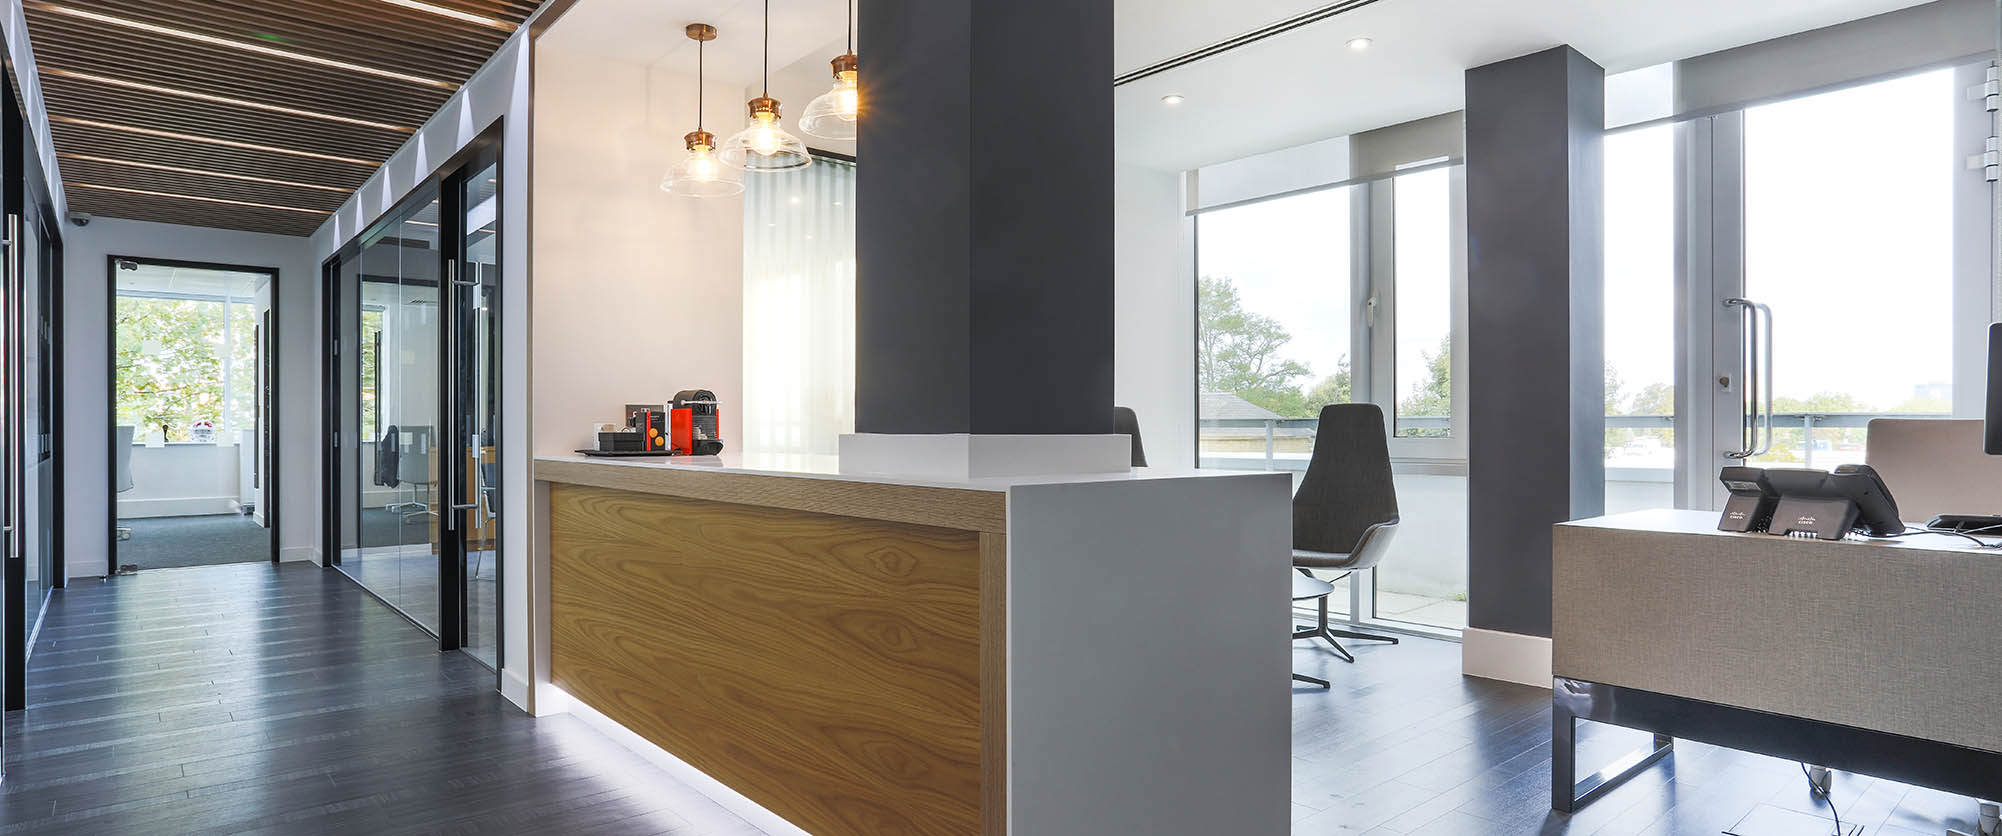 Office design & build specialists